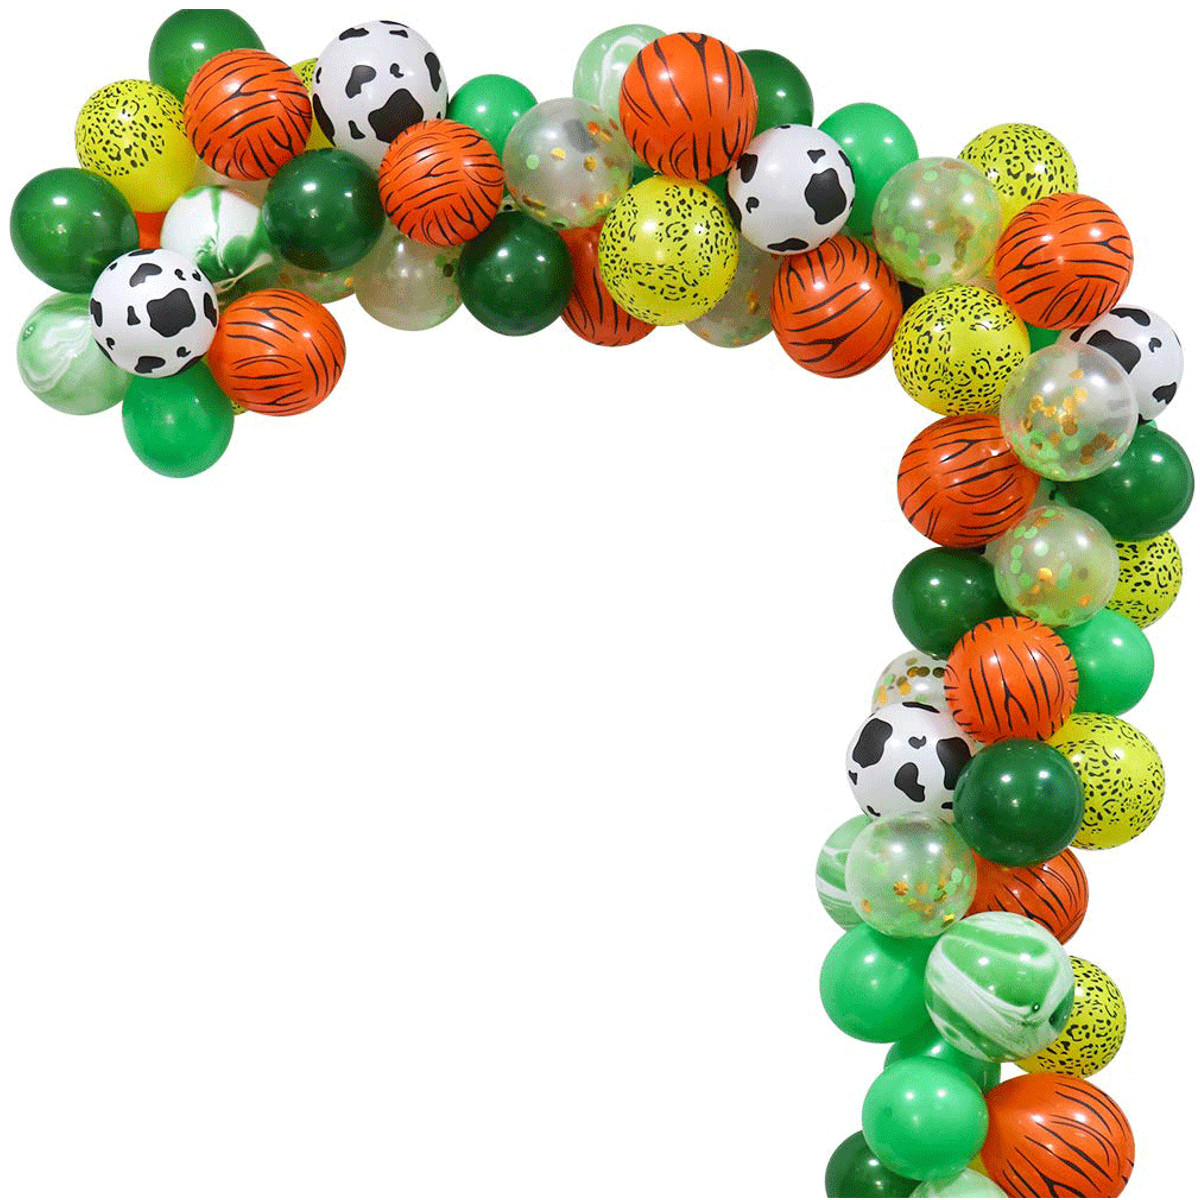 75X Balloons+Leaves+Paper Poms+Banner+Pump Jungle Party Balloons Decoration Kit